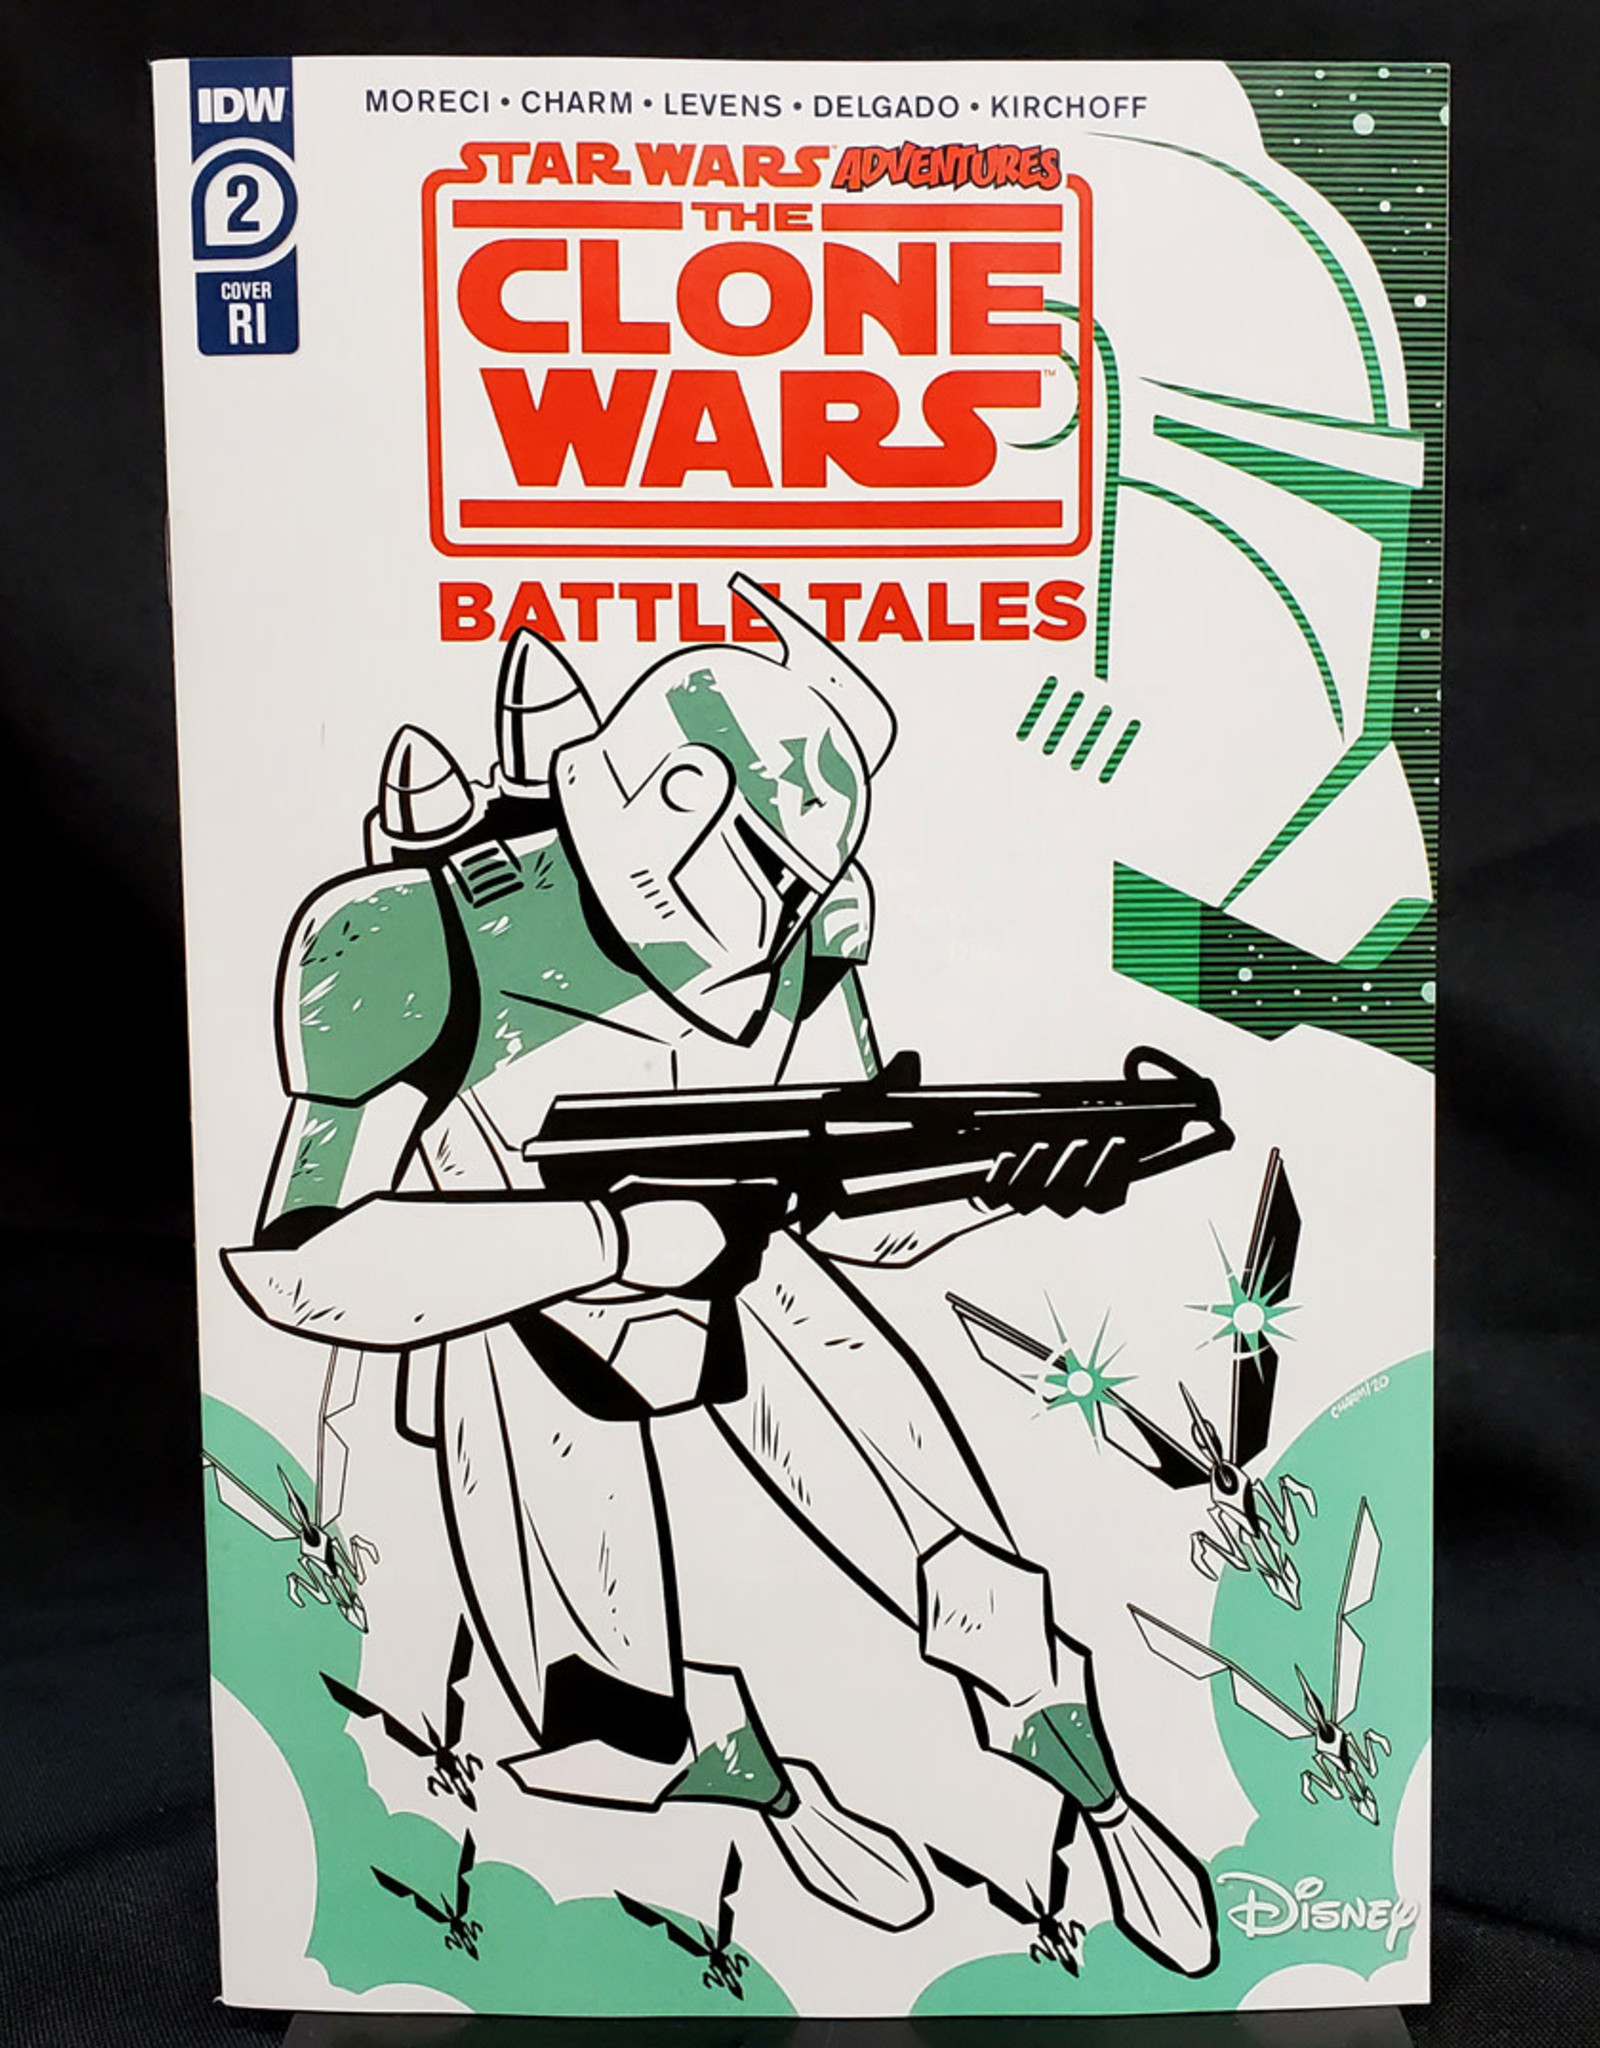 IDW PUBLISHING STAR WARS ADVENTURES CLONE WARS #2 (OF 5) 10 COPY INCENTIVE CHARM VARIANT